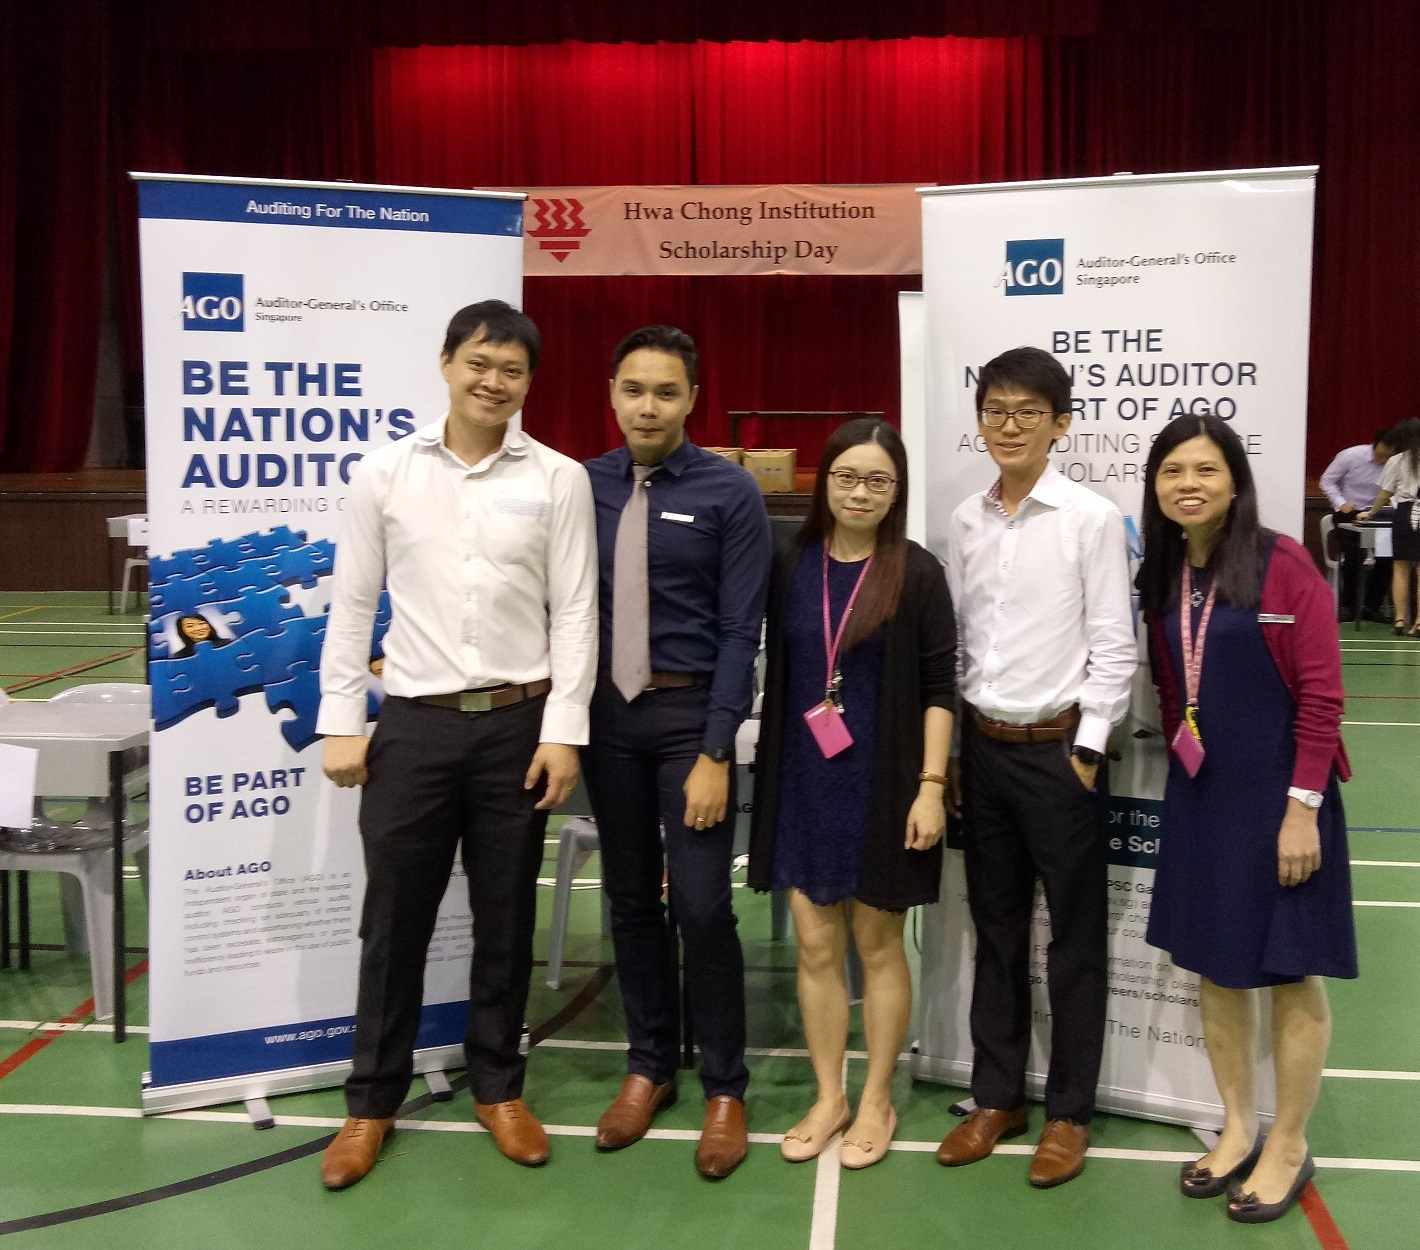 Participation in Hwa Chong Institution (HCI) Scholarship Day